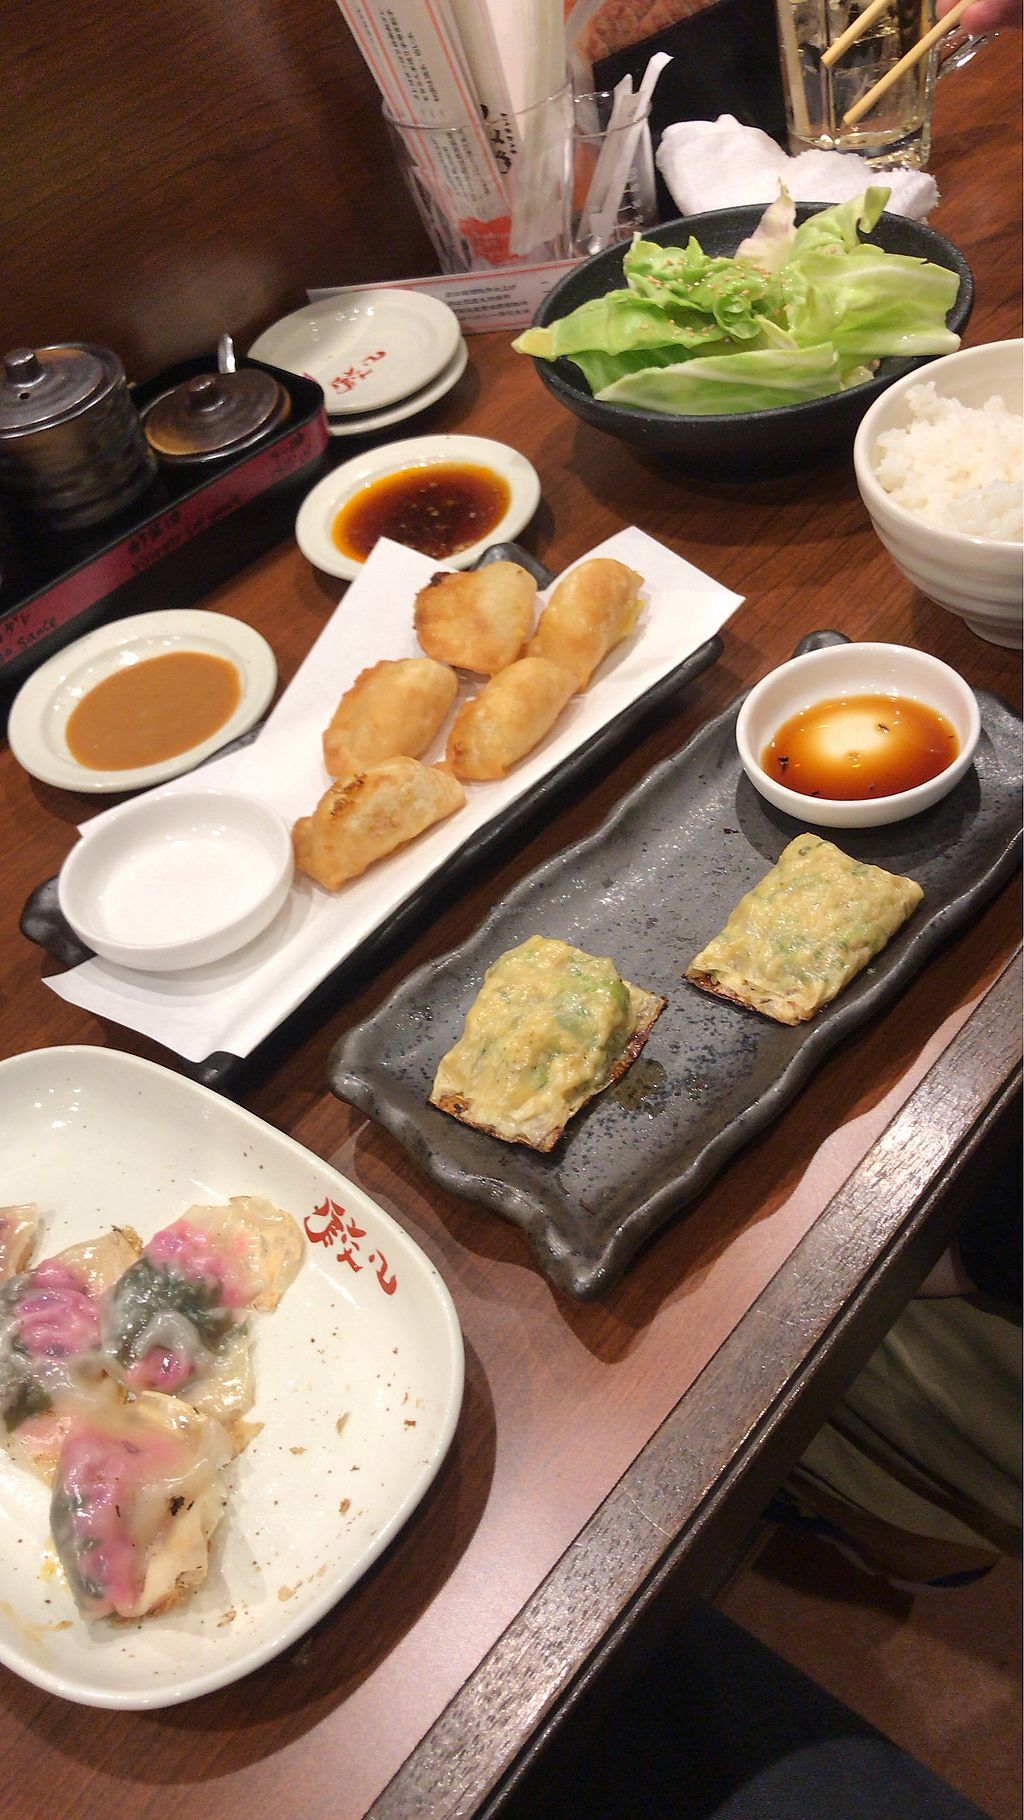 "Photo of Chao Chao Gyoza Shijo-Kawaramachi  by <a href=""/members/profile/MelissaW"">MelissaW</a> <br/>Three vegan gyoza  <br/> February 4, 2018  - <a href='/contact/abuse/image/108953/354814'>Report</a>"